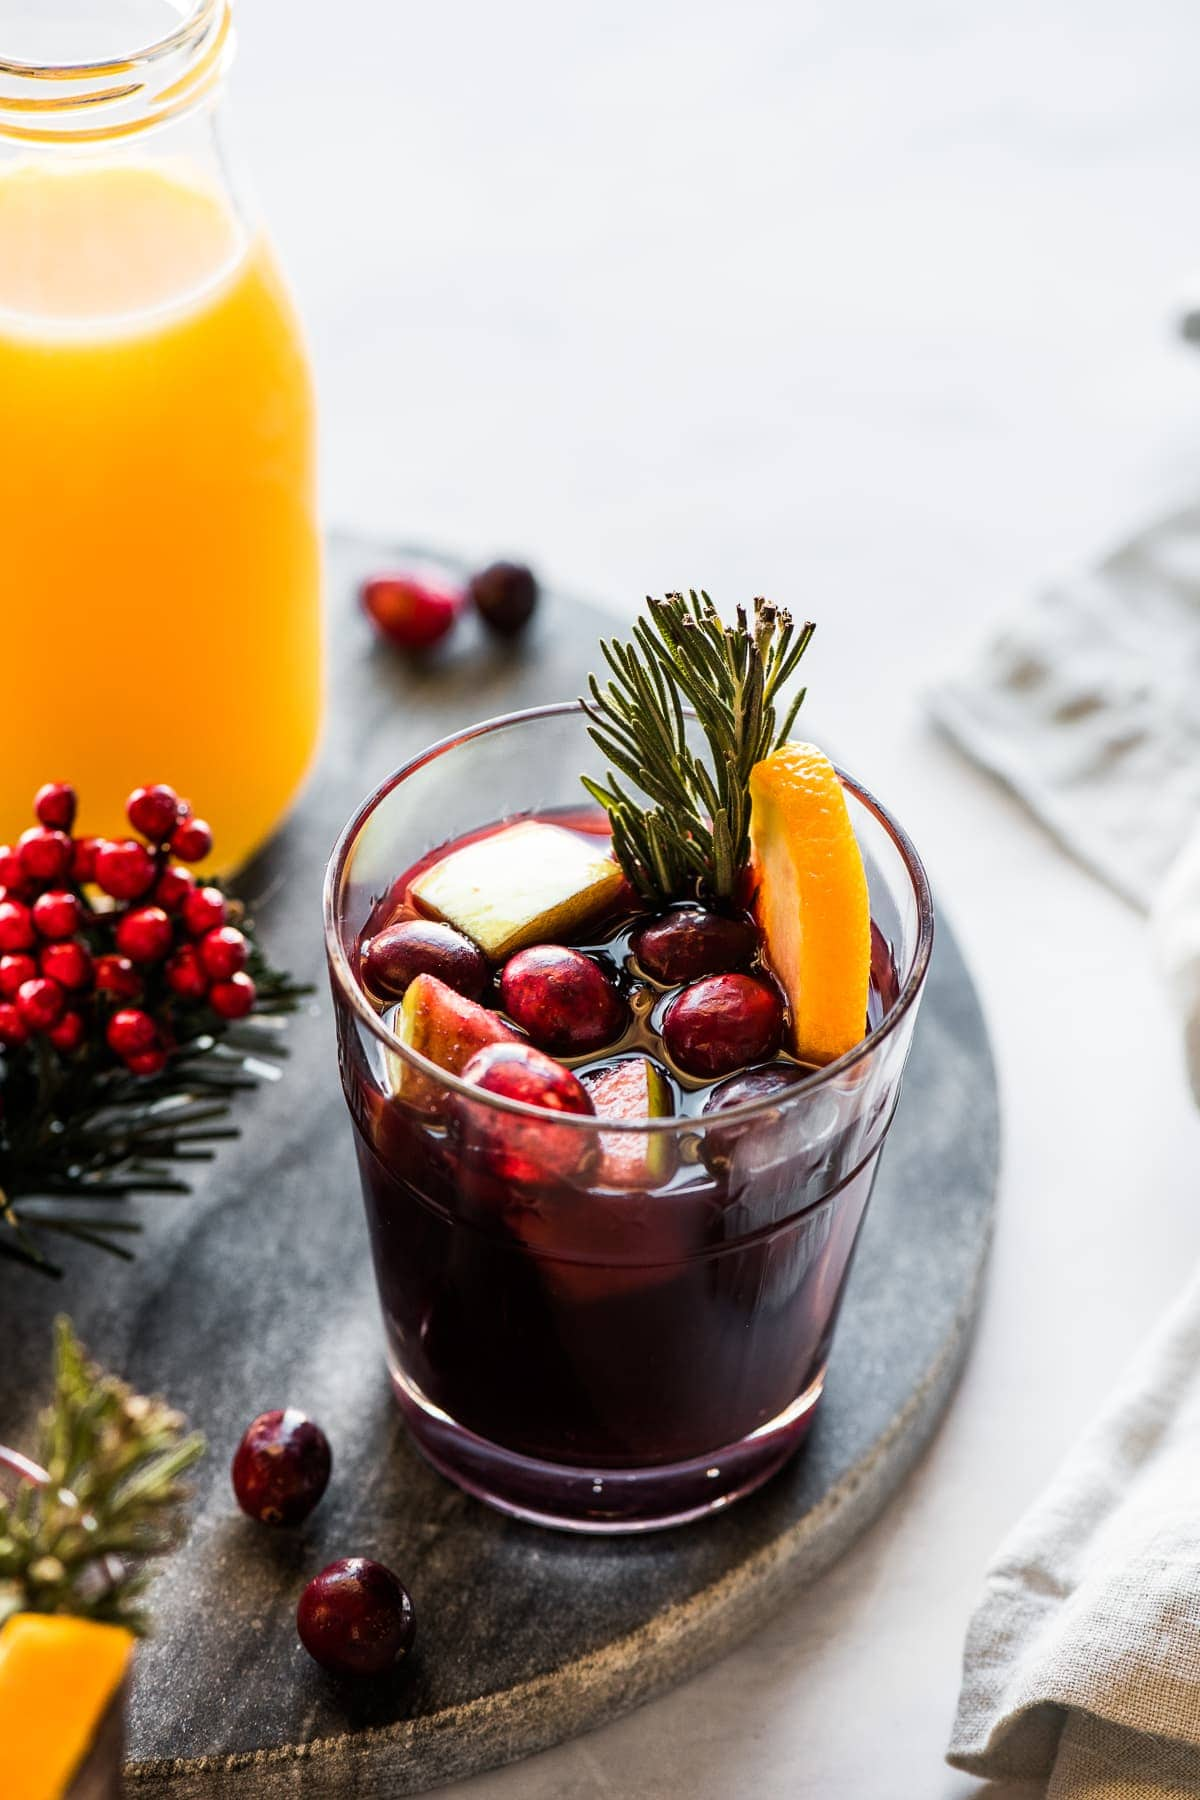 A cup of winter sangria made with red wine, fruit, and spices.